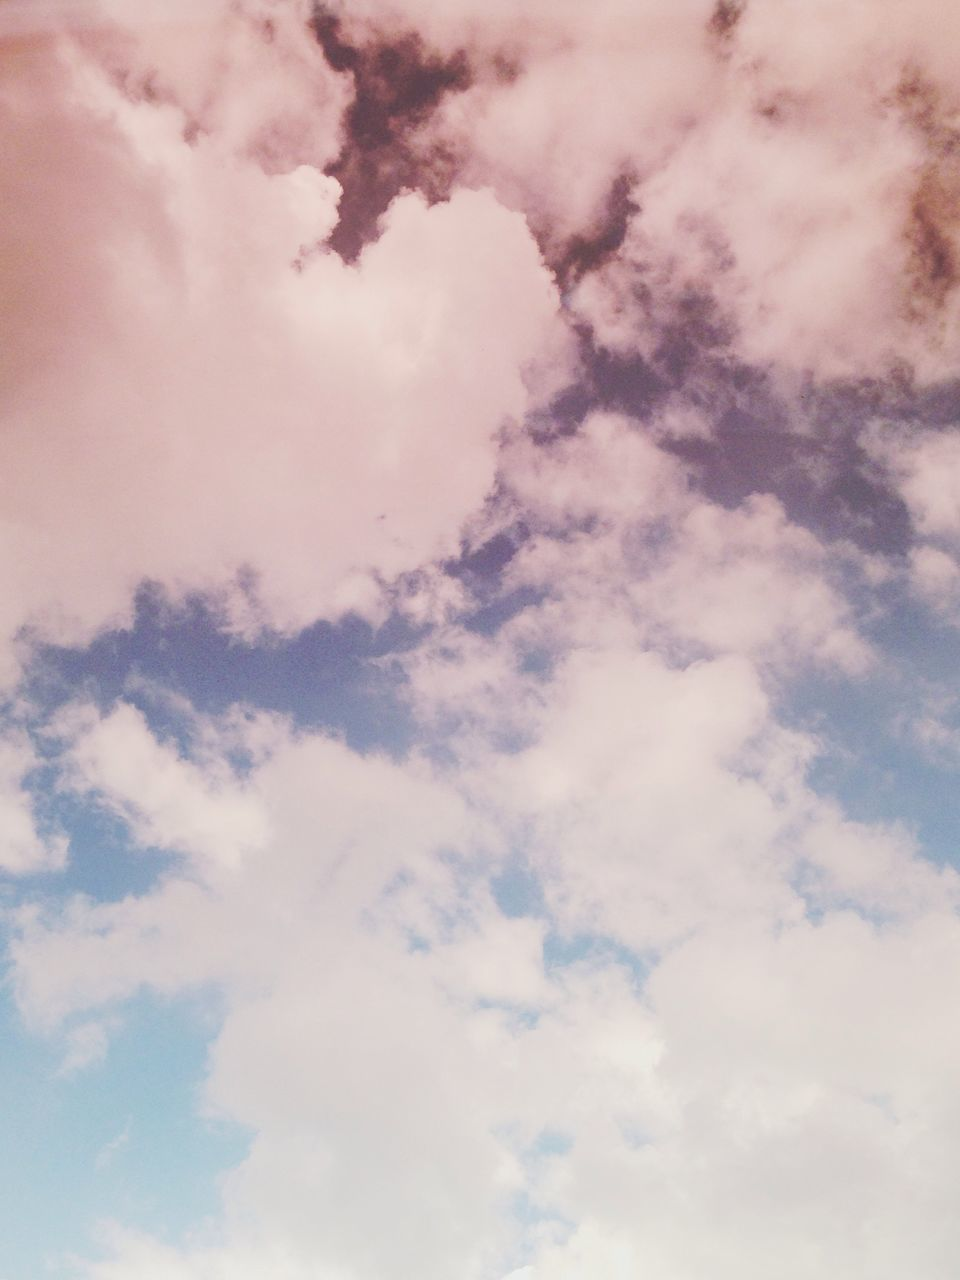 cloud - sky, sky, beauty in nature, backgrounds, nature, low angle view, full frame, no people, scenics, softness, tranquility, sky only, outdoors, day